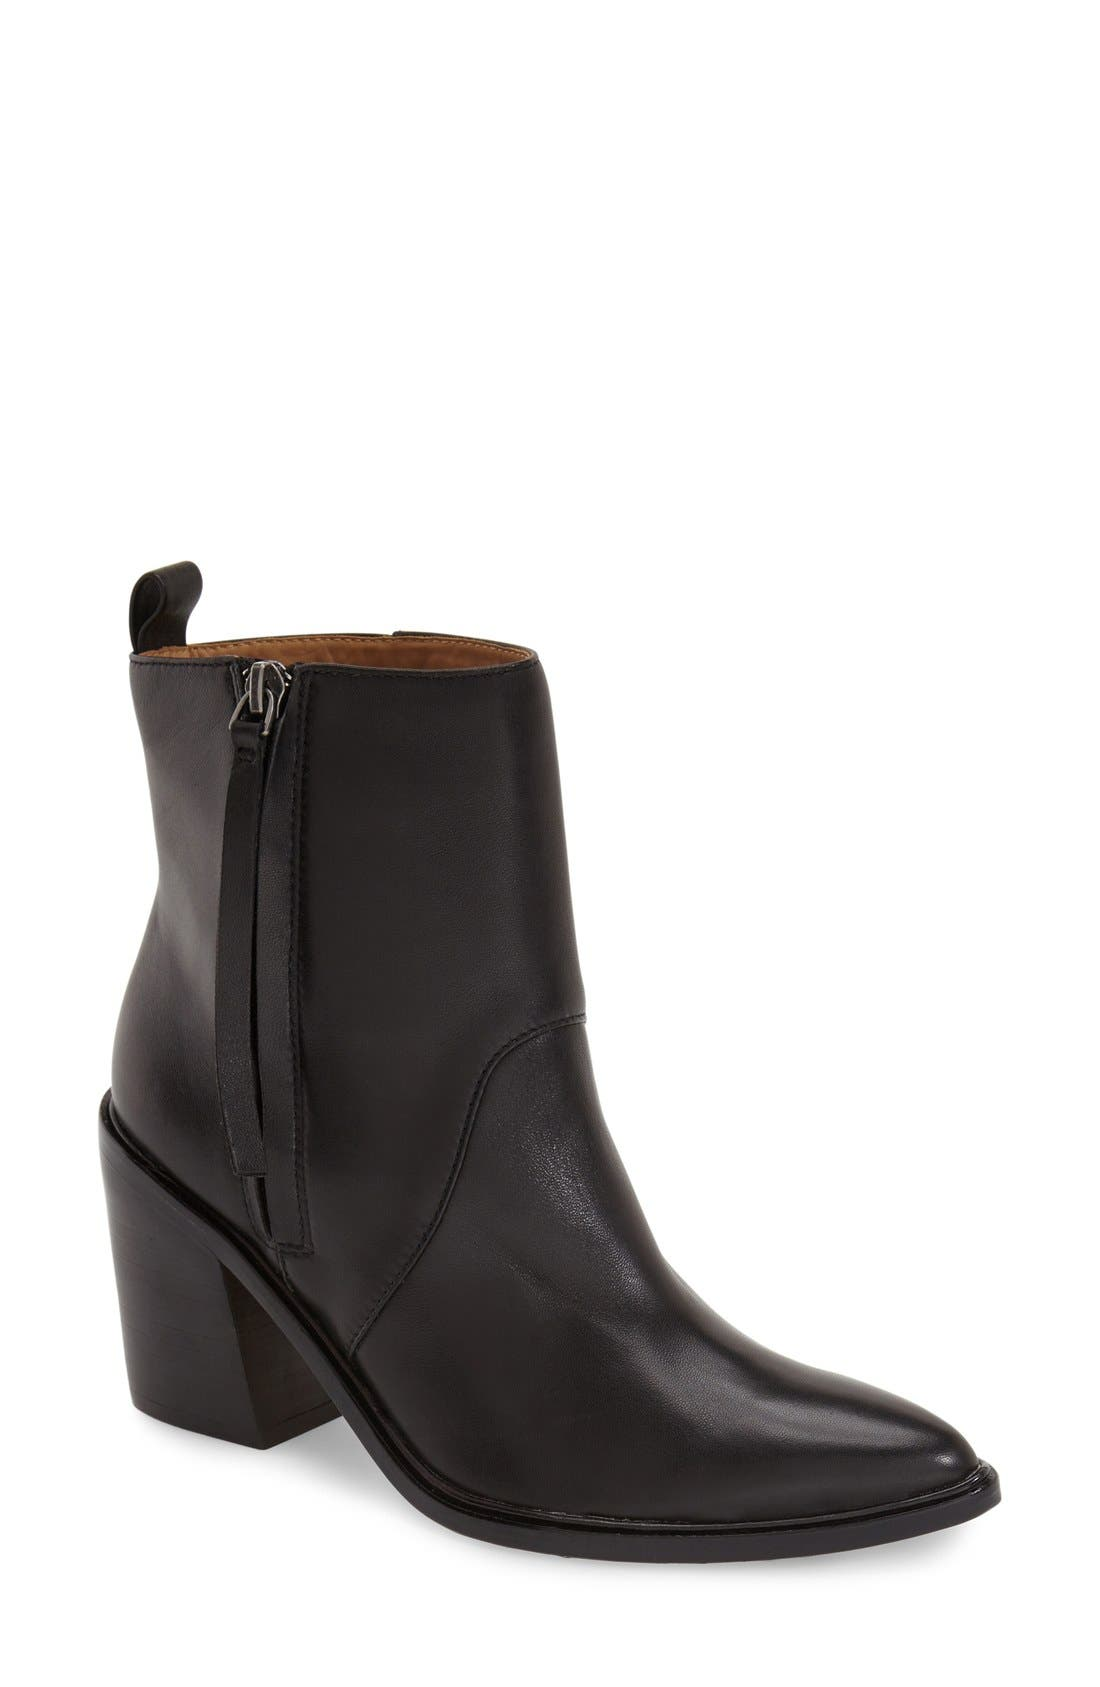 Alternate Image 1 Selected - Bettye Muller 'Troy' Pointy Toe Boot (Women)